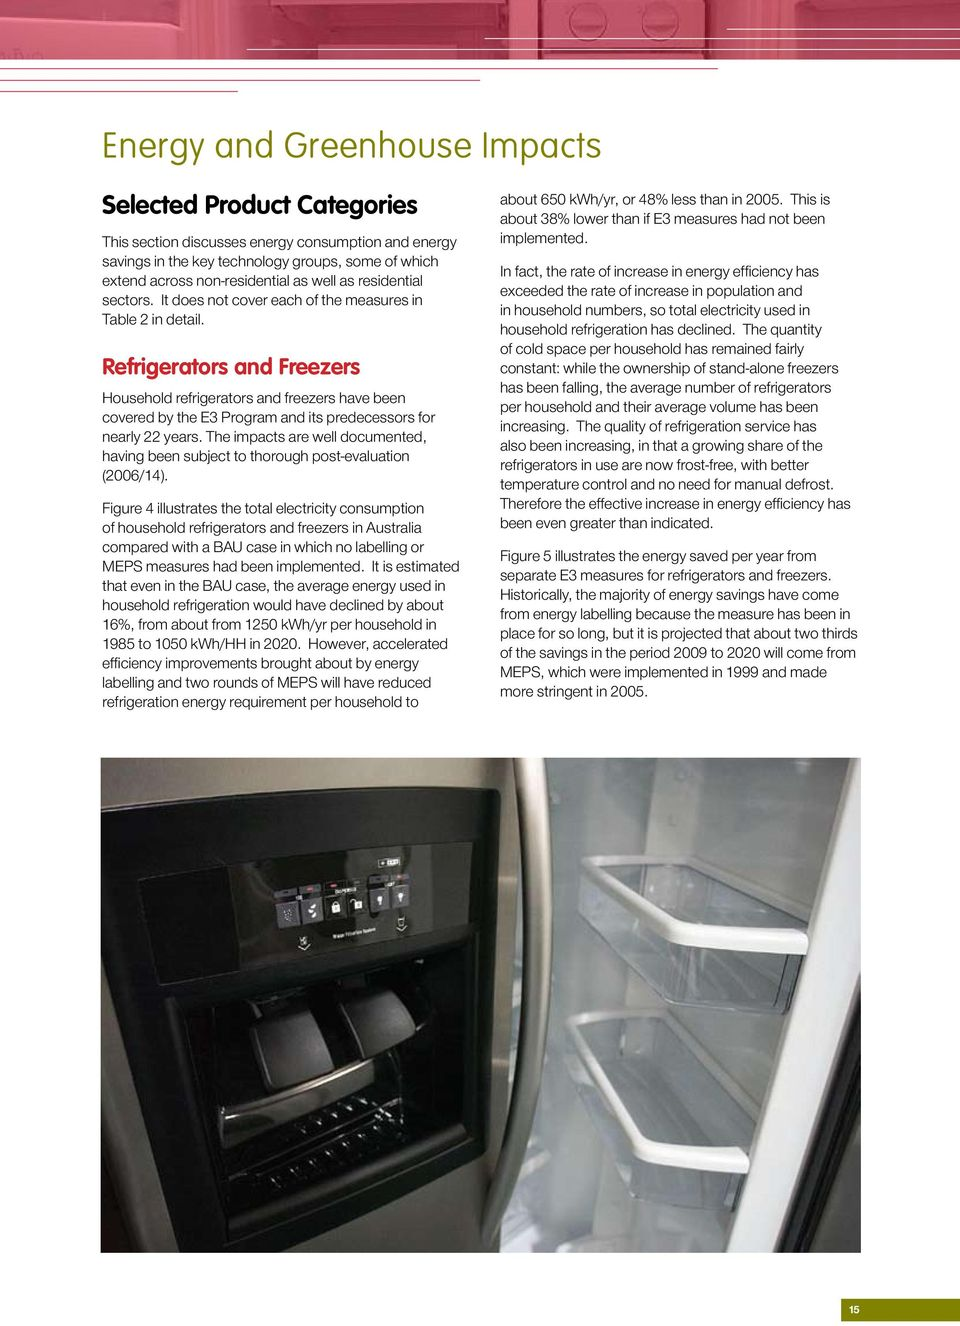 Refrigerators and Freezers Household refrigerators and freezers have been covered by the E3 Program and its predecessors for nearly 22 years.